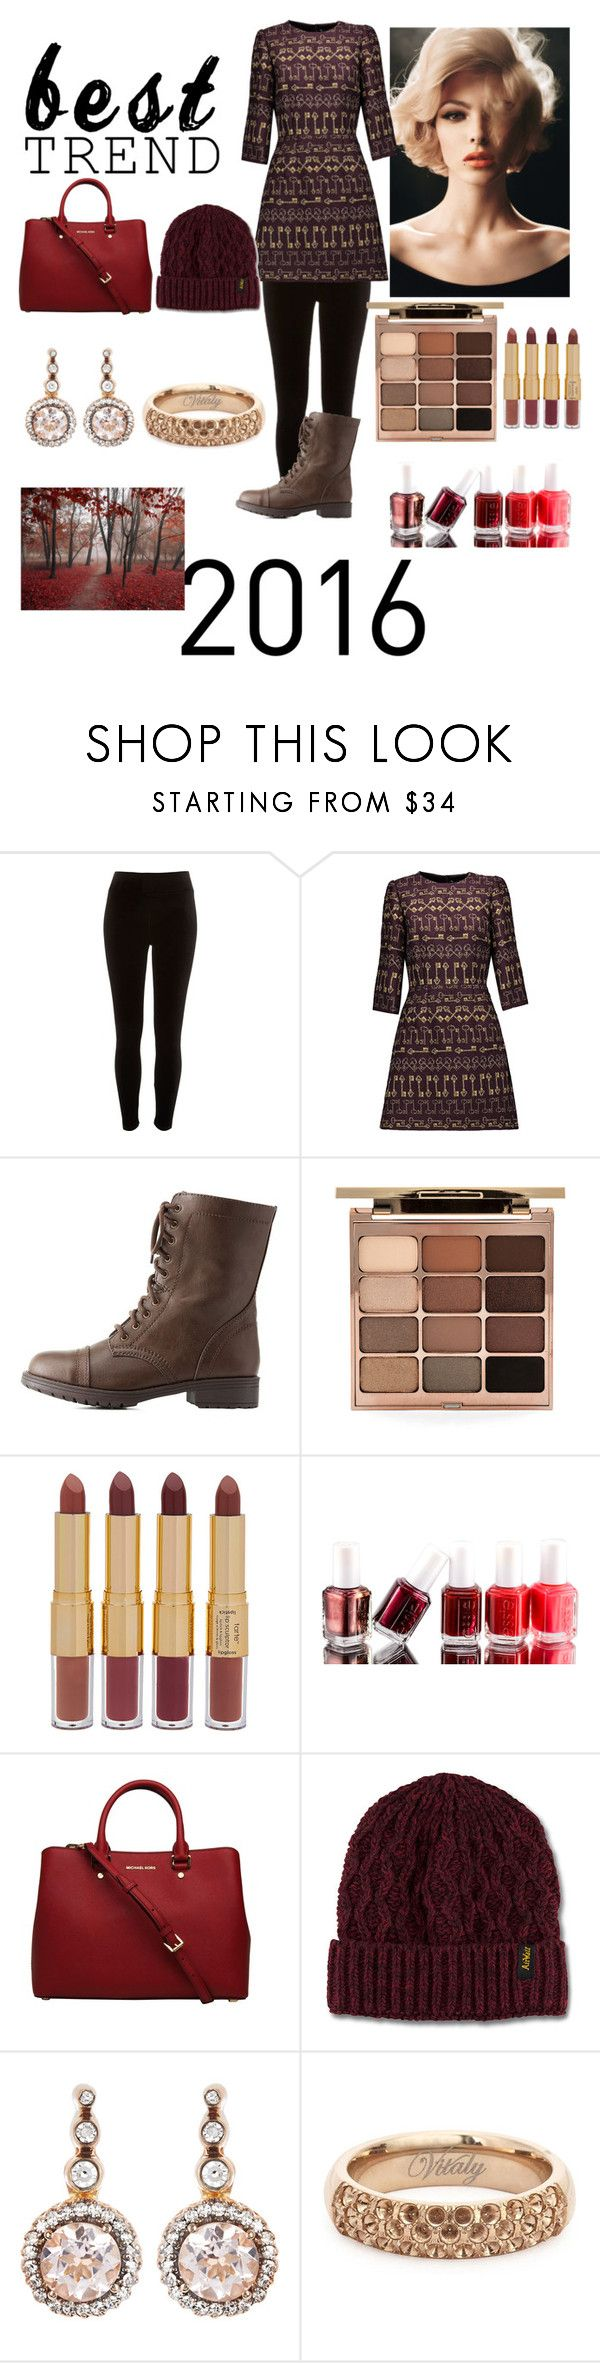 """Fall"" by unitaiyo ❤ liked on Polyvore featuring River Island, Dolce&Gabbana, Charlotte Russe, Stila, tarte, Essie, Dr. Martens and Selim Mouzannar"